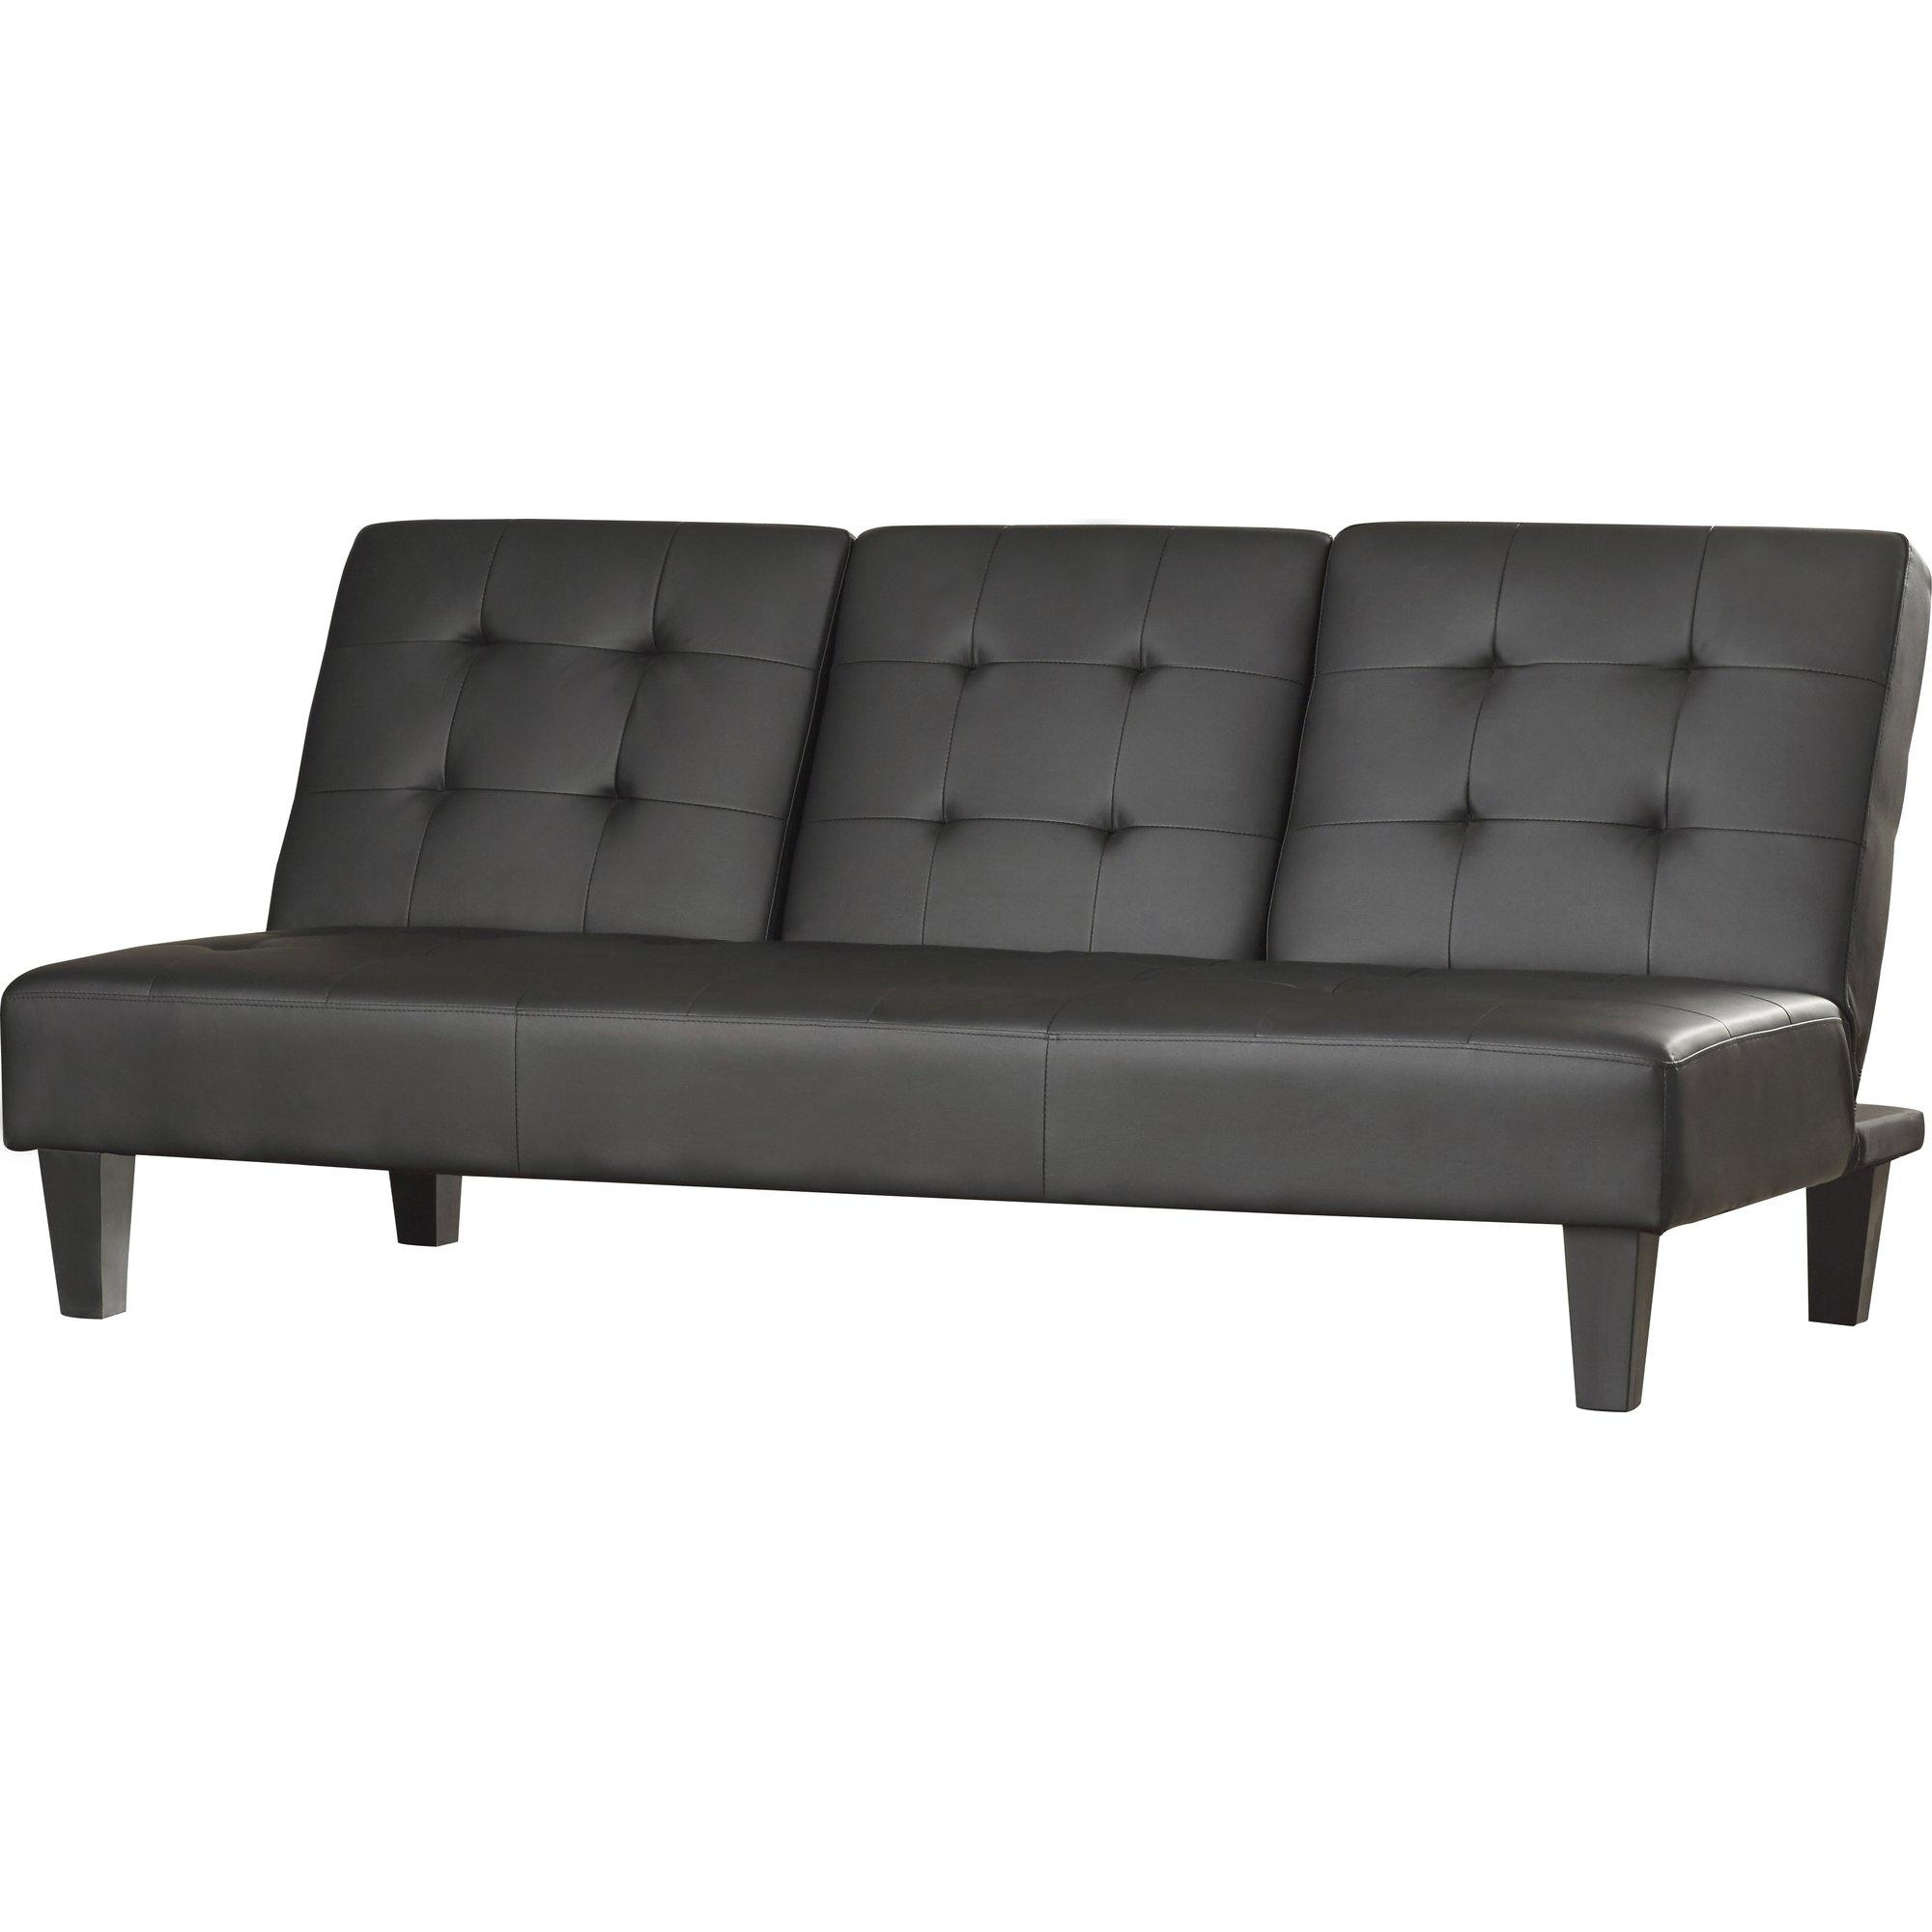 Furniture: Castro Convertible Bed For Exciting Sofabed Design With Regard To Carlyle Sofa Beds (Image 4 of 20)